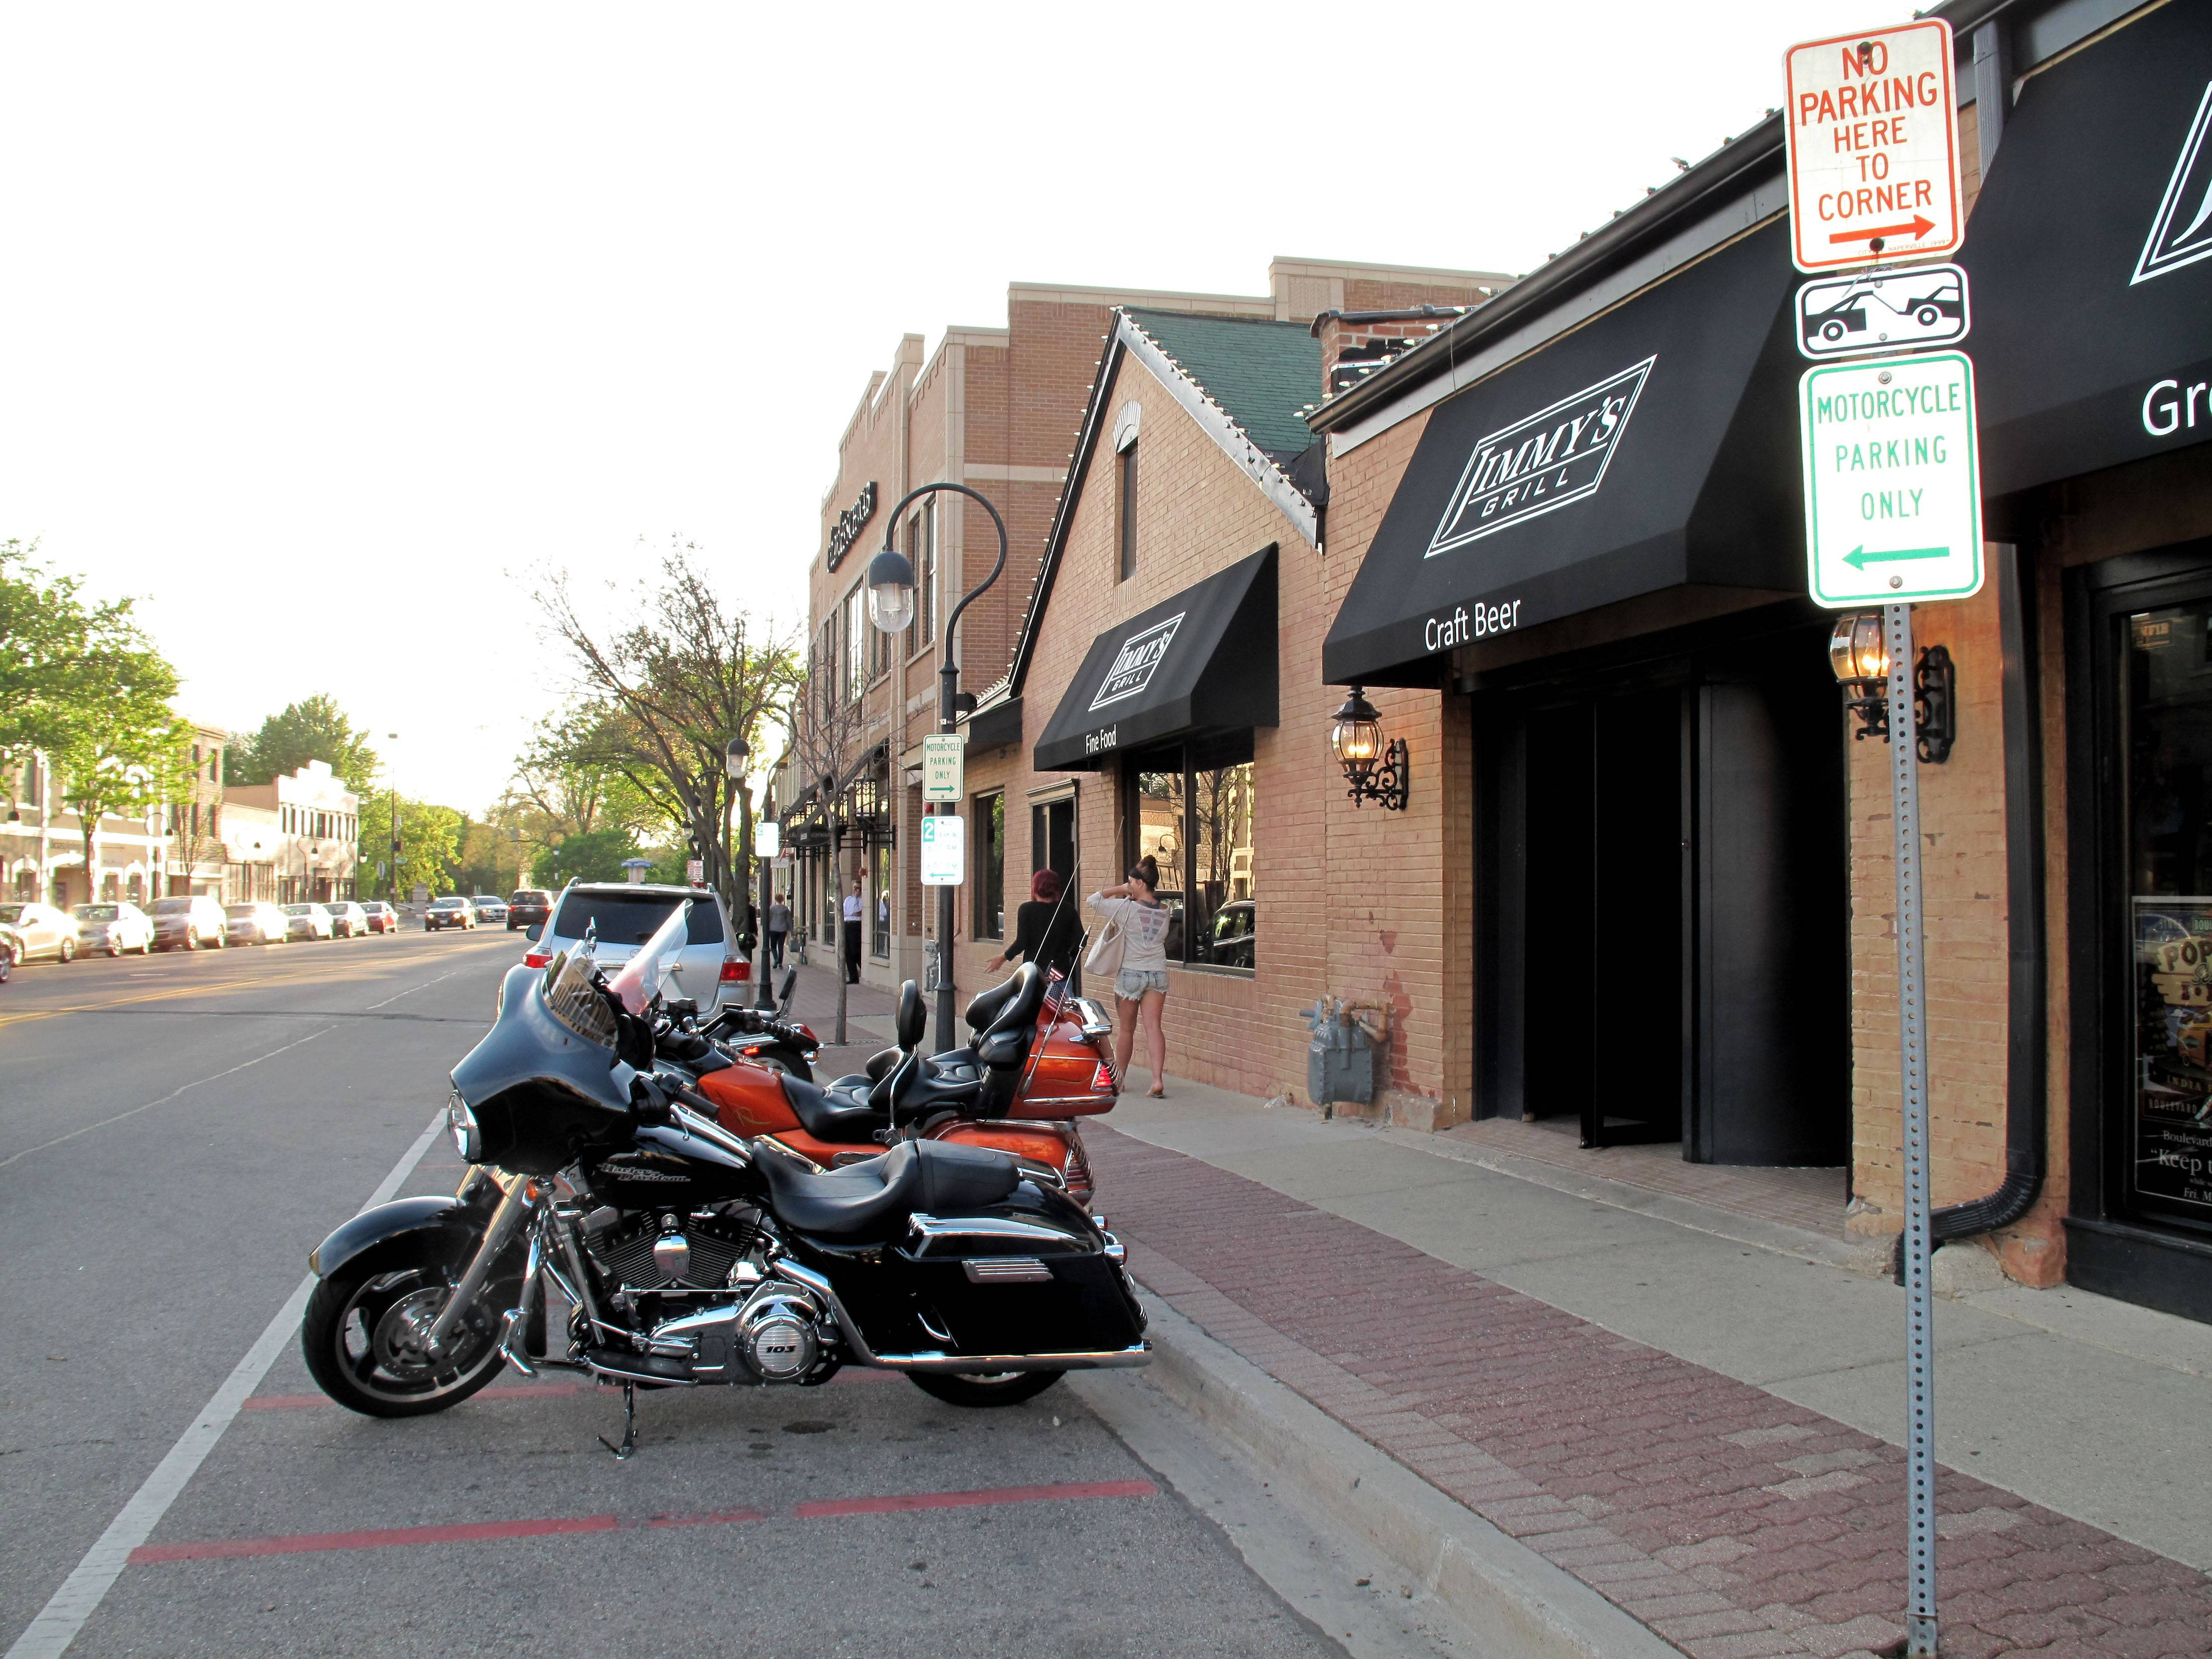 Naperville will be moving eight motorcycle parking spots from Chicago Avenue outside the entrance of Jimmy's Grill to Jackson Avenue near a city parking lot east of Egg Harbor Cafe after the manager of Jimmy's complained of noise and exhaust problems from the bikes.